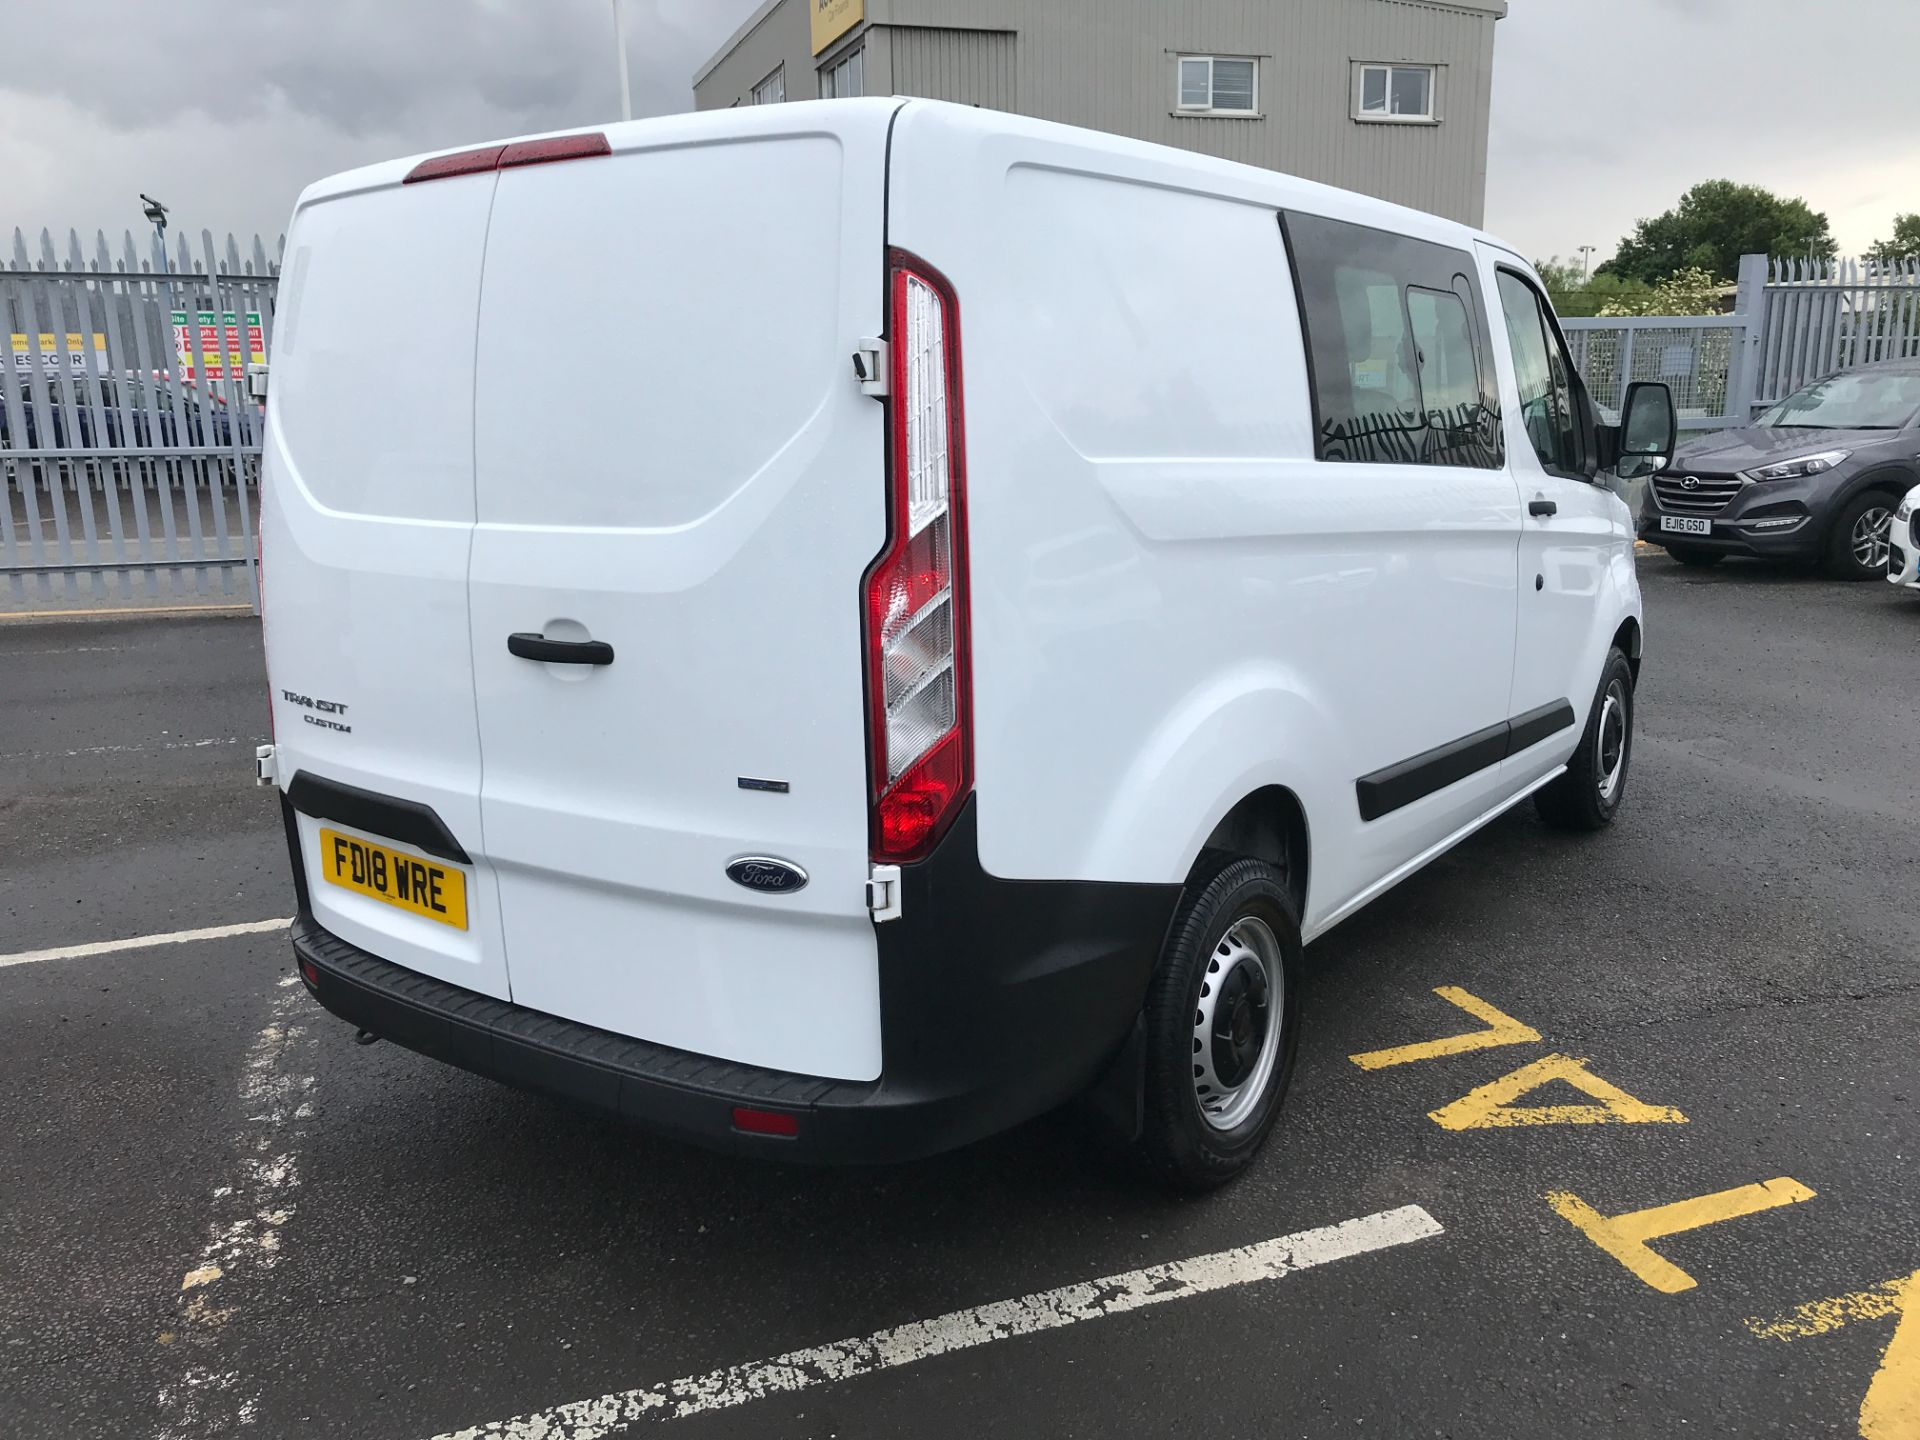 2018 Ford Transit Custom 300 L1 2.0TDCI 105PS LOW ROOF EURO 6 DOUBLE CAB (FD18WRE) Image 13